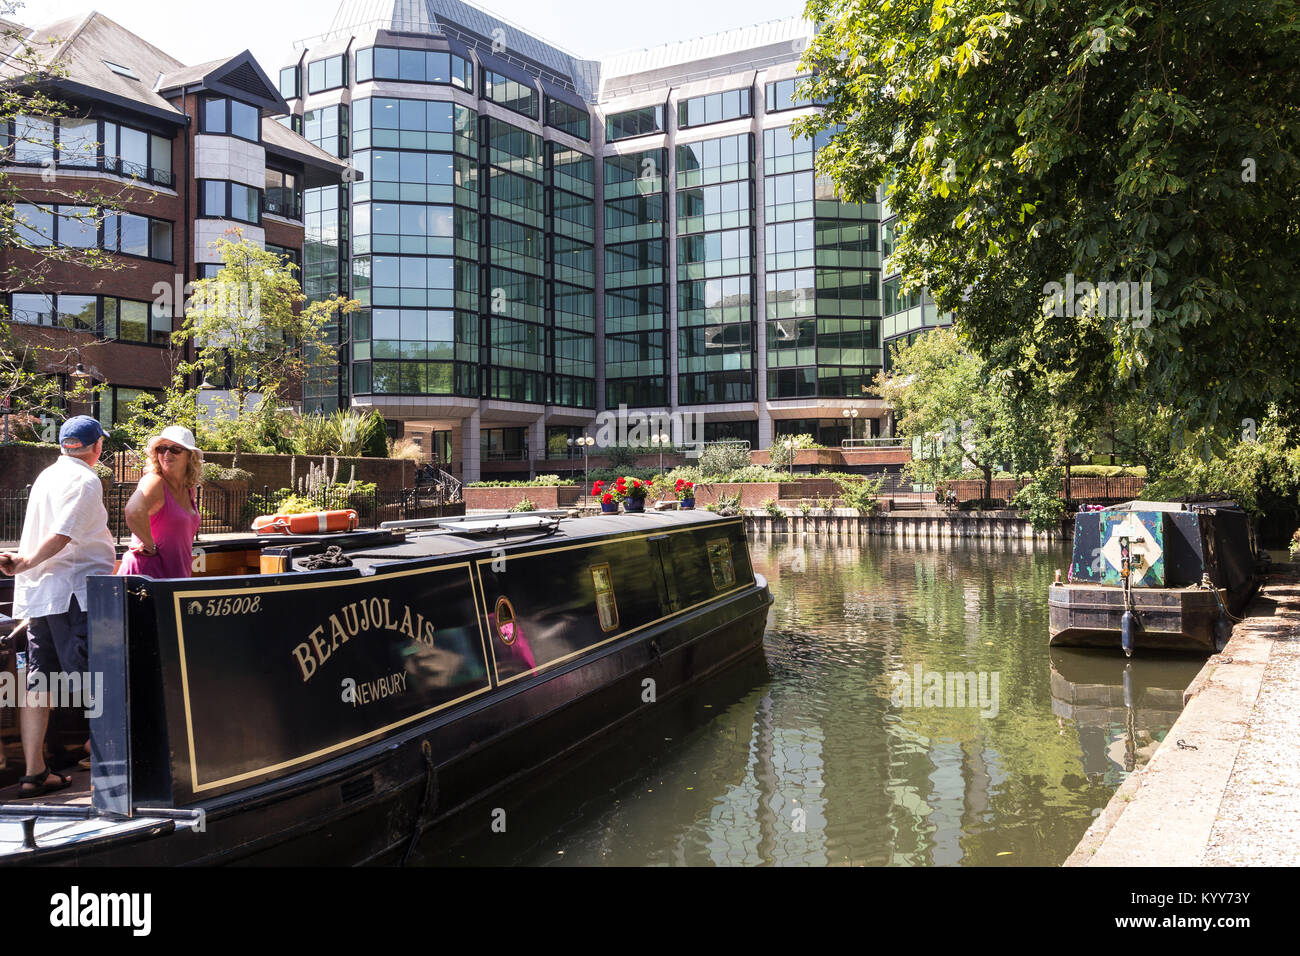 New developments along the River Thames in Reading, Berkshire UK 2014 - Stock Image